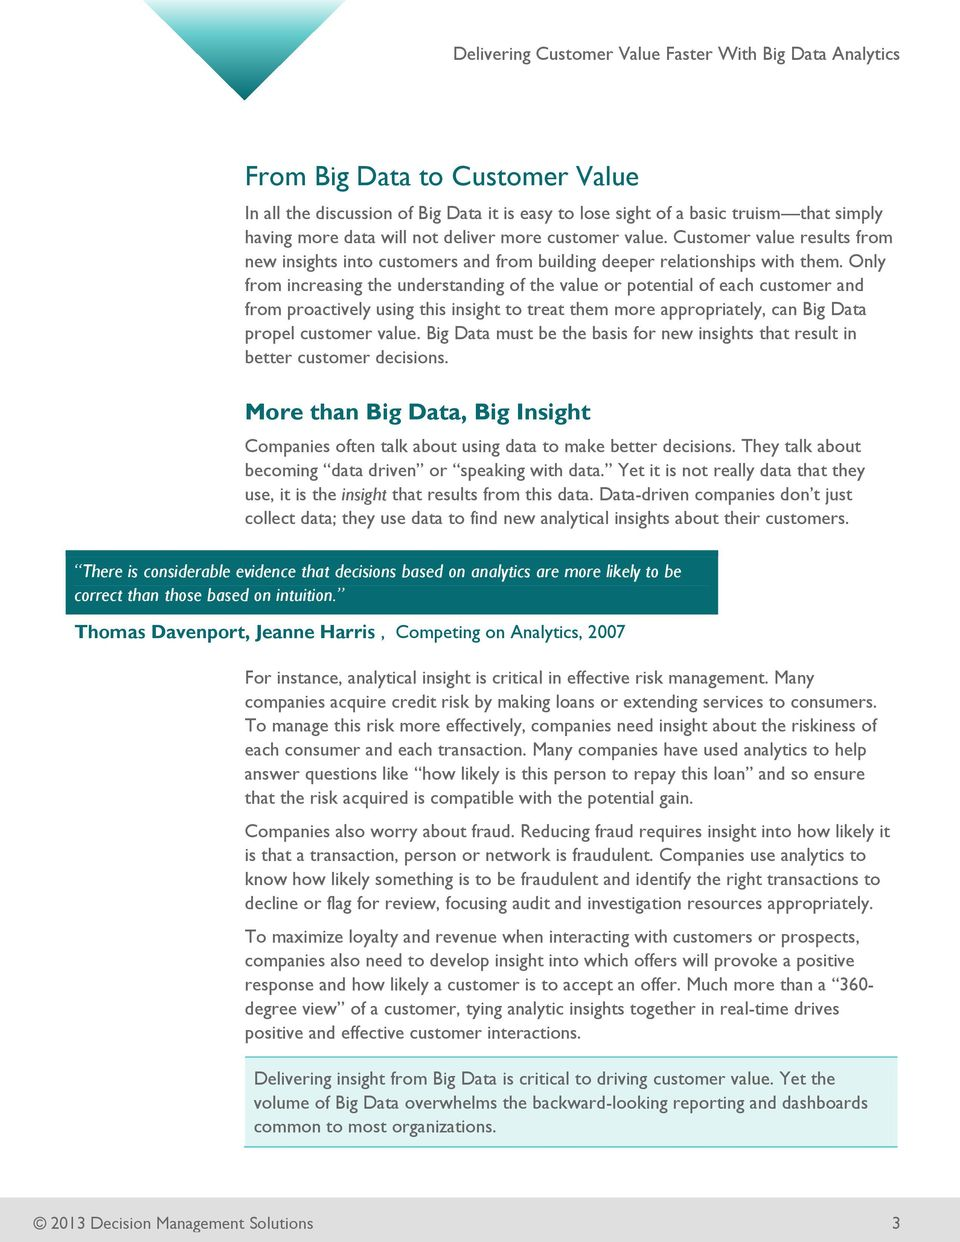 Only from increasing the understanding of the value or potential of each customer and from proactively using this insight to treat them more appropriately, can Big Data propel customer value.